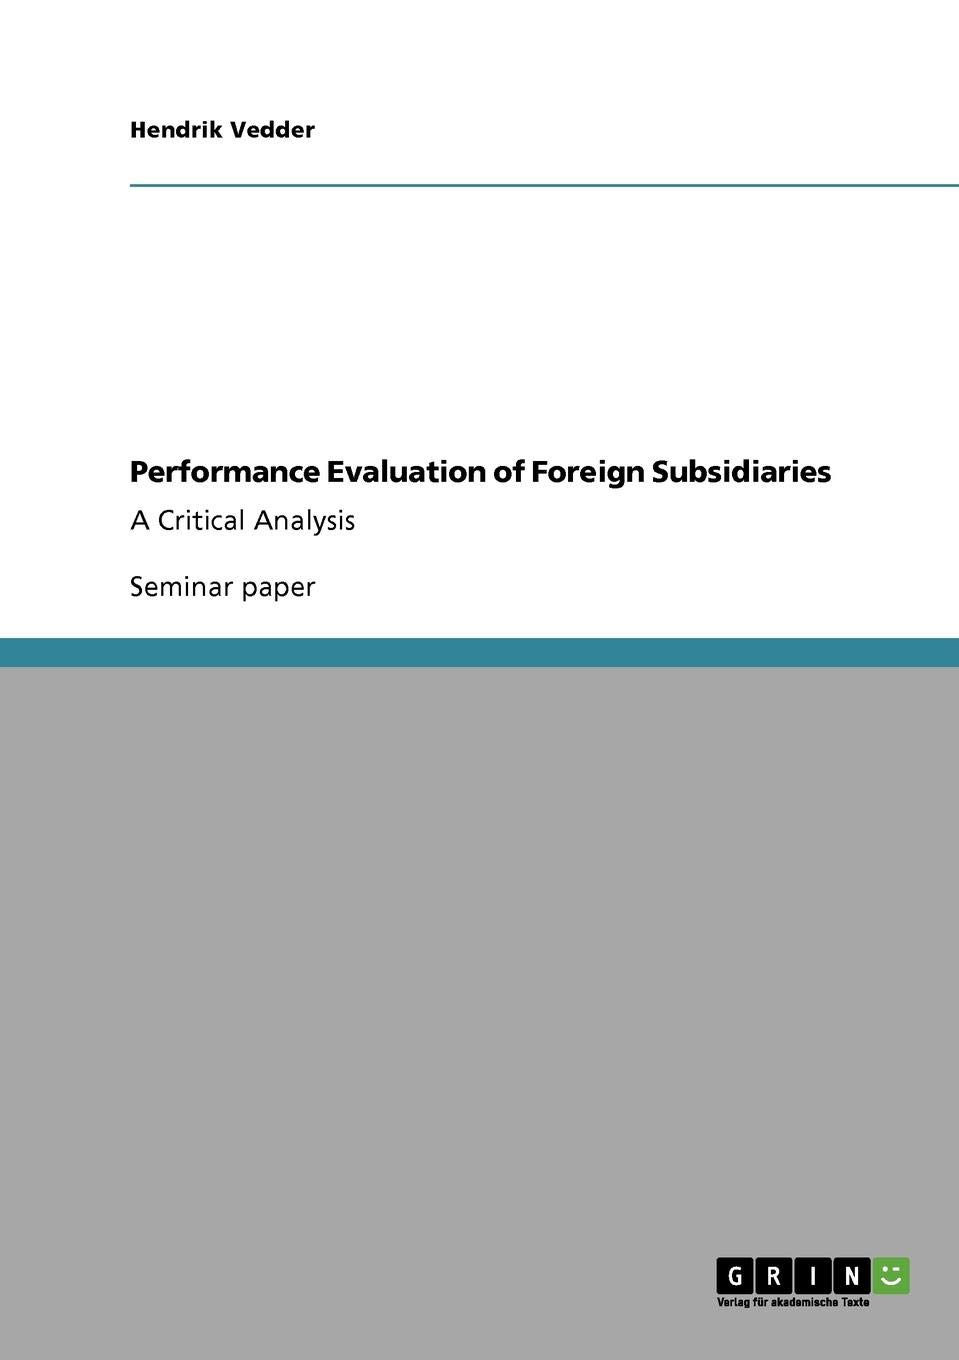 Performance Evaluation of Foreign Subsidiaries: Hendrik Vedder